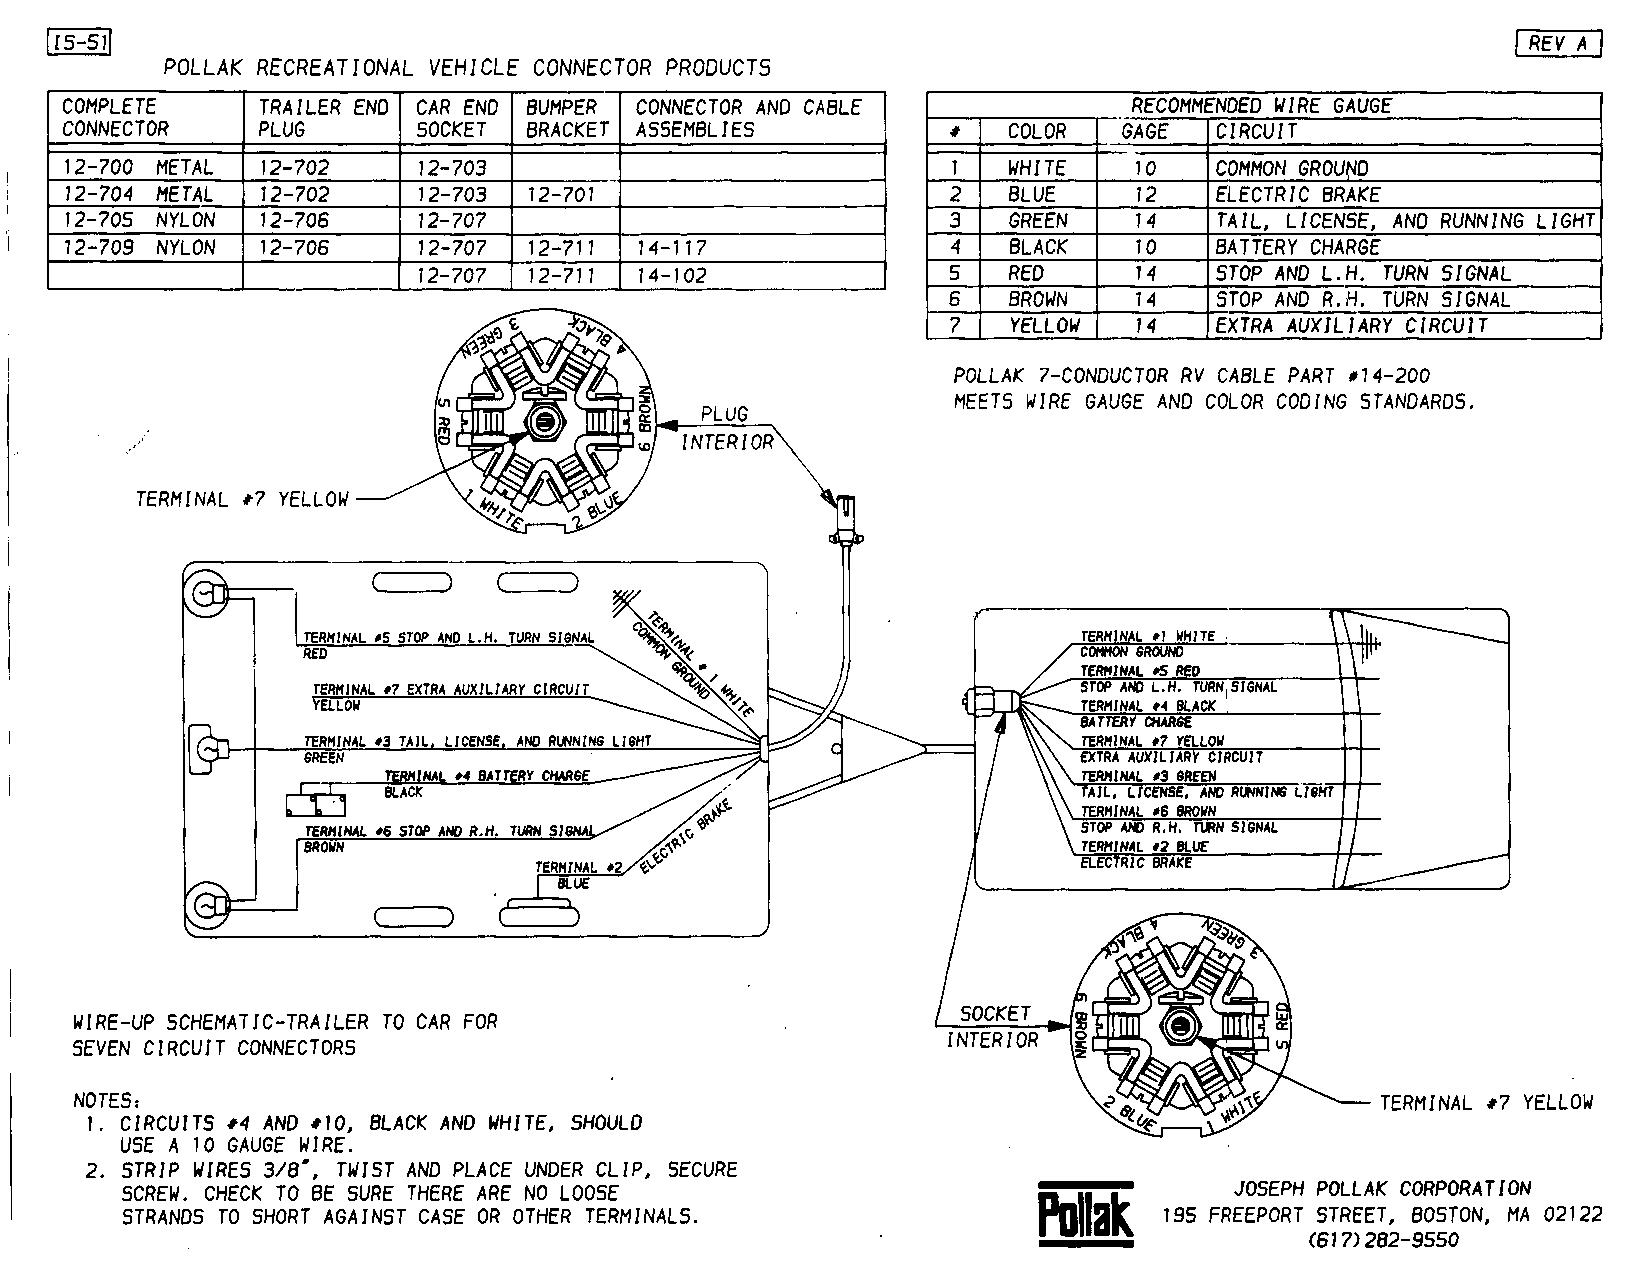 7 wire rv plug, Wiring diagram